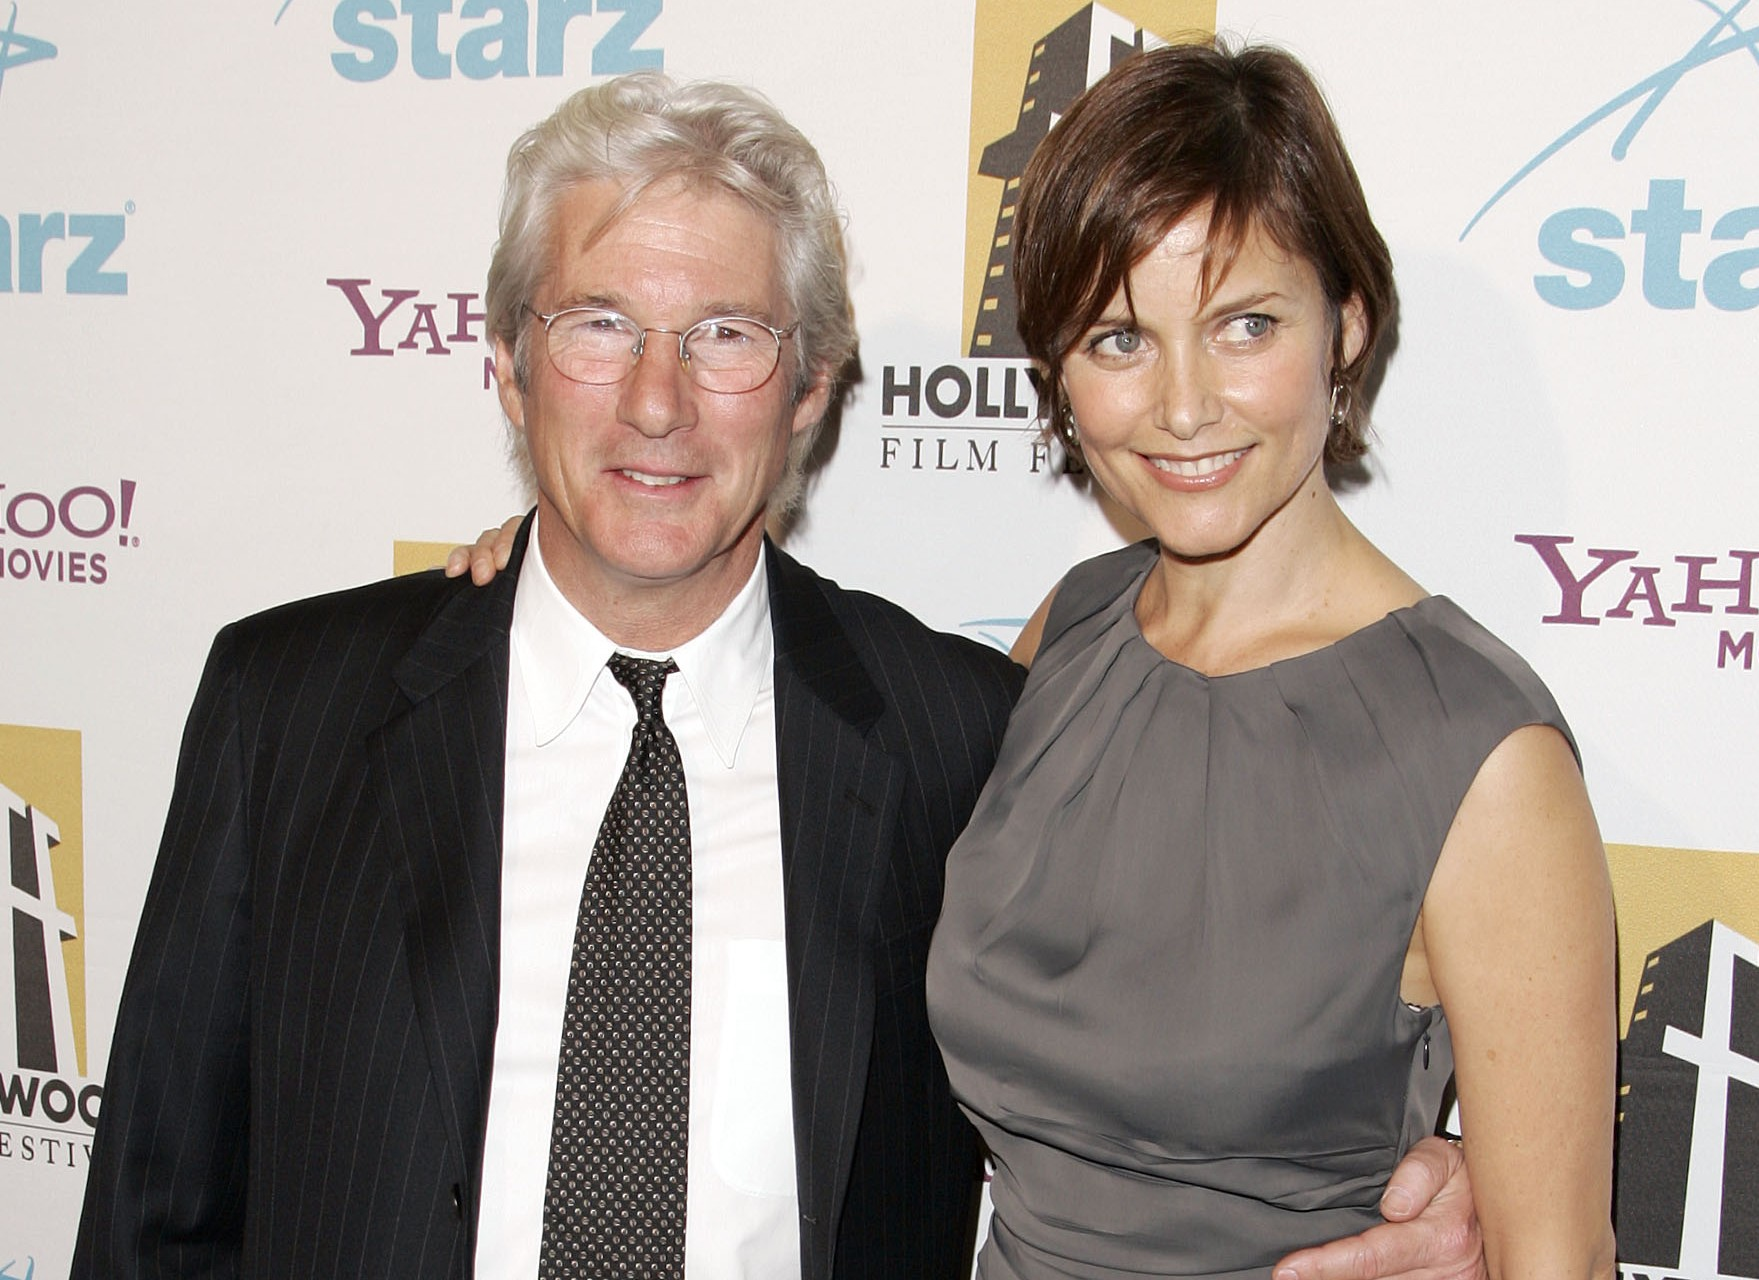 Richard gere relationships